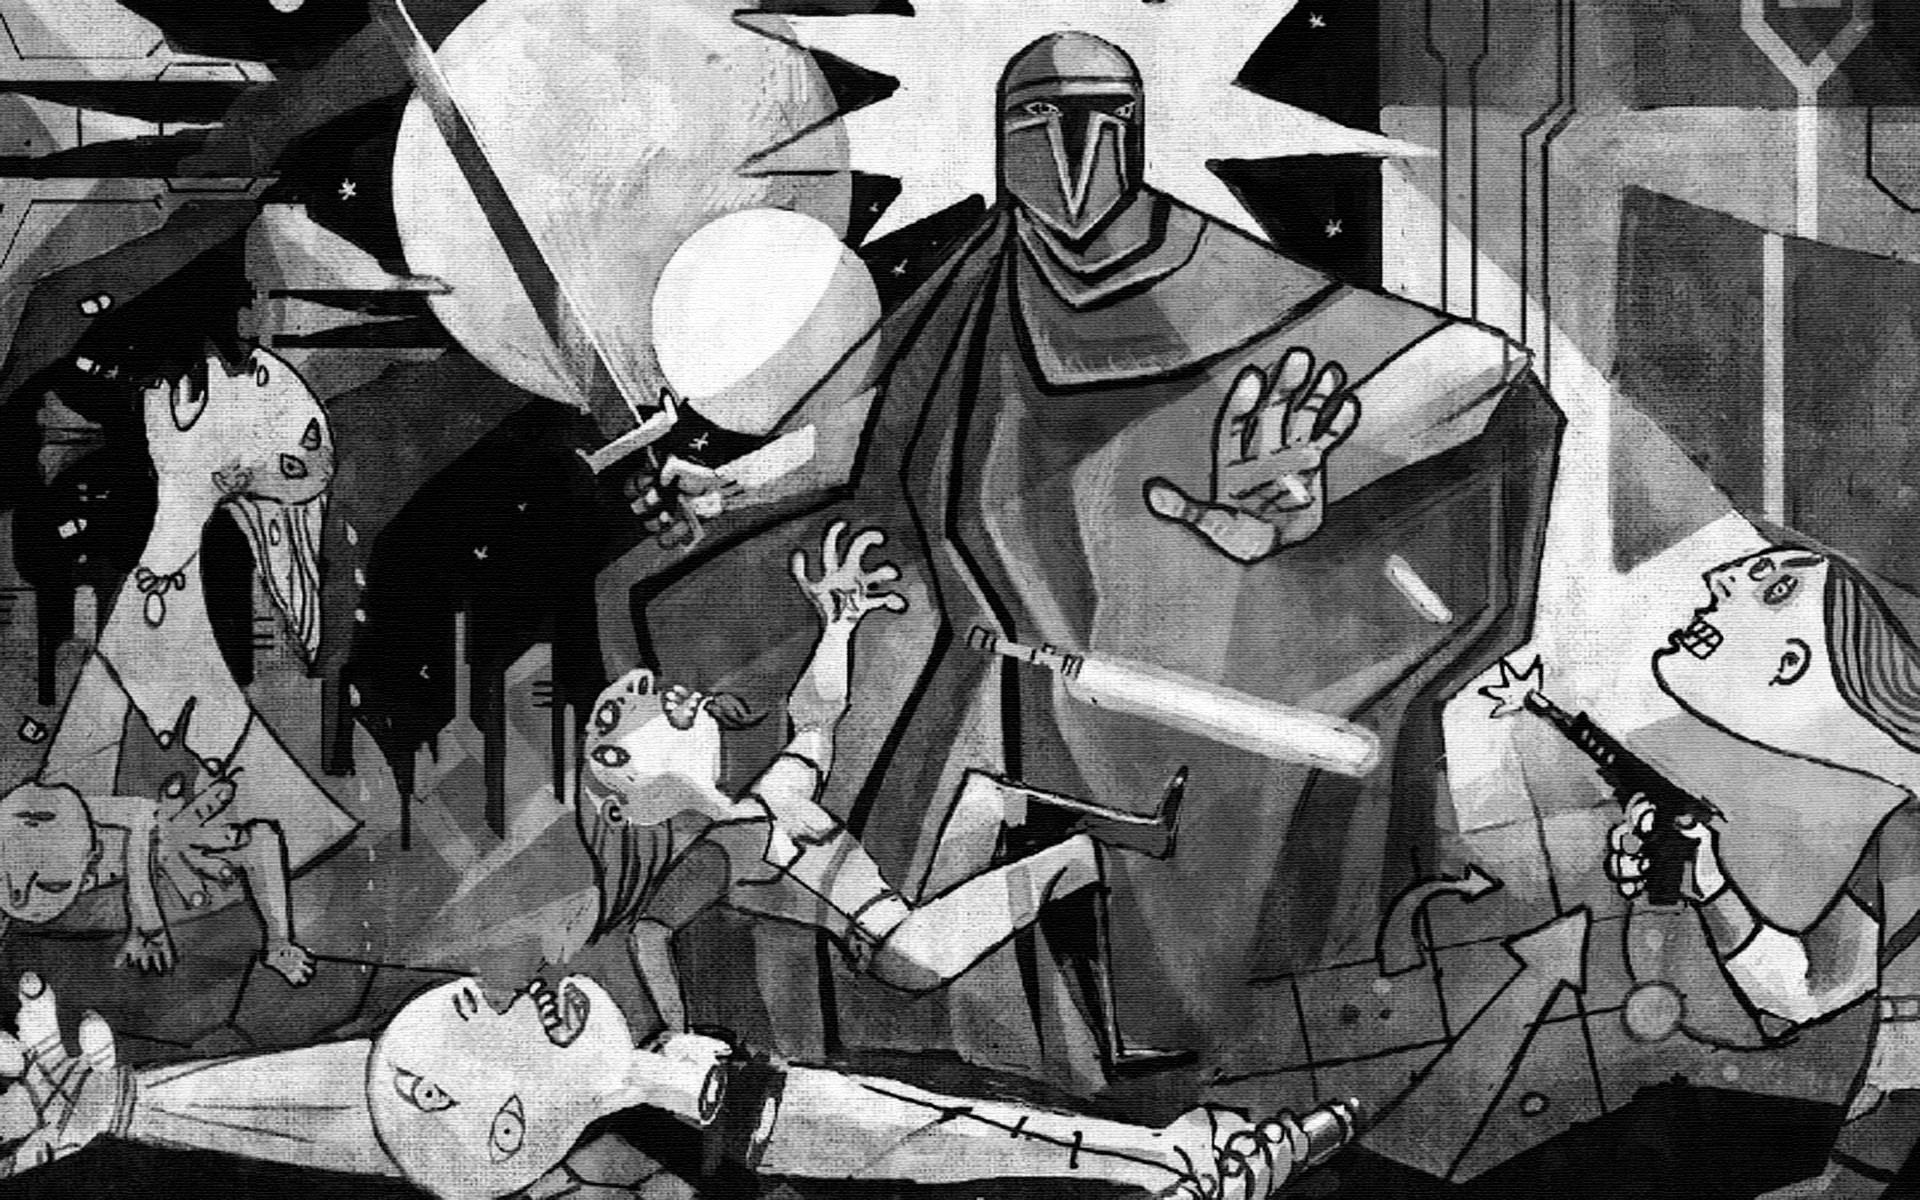 1920x1200 'Star Wars: Clone Wars meets Picasso's Guernica' via Empire Online   wallpaper (click for full size)